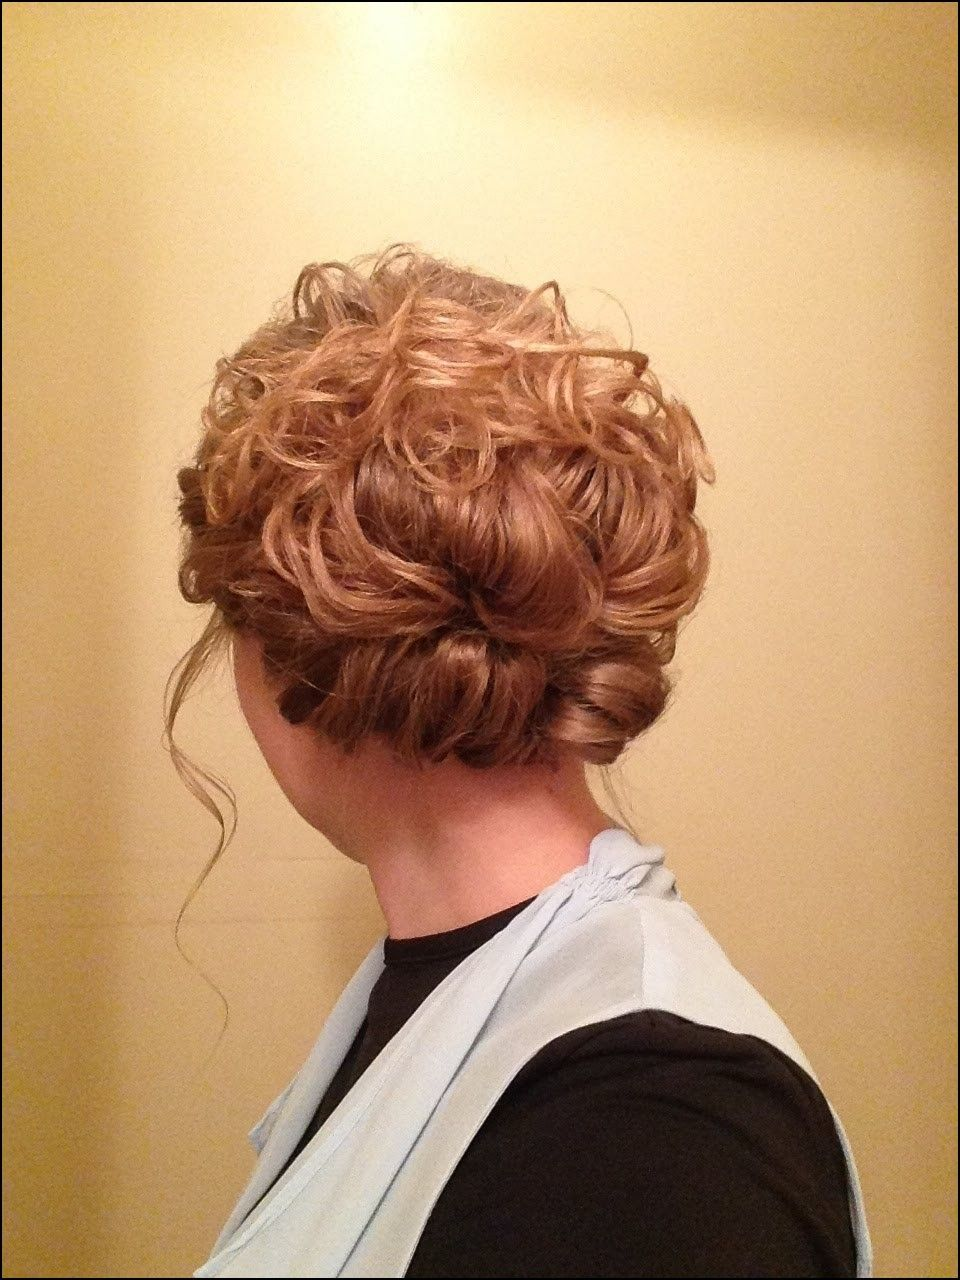 Pentecostal hairstyles for long hair hairstyles ideas pinterest